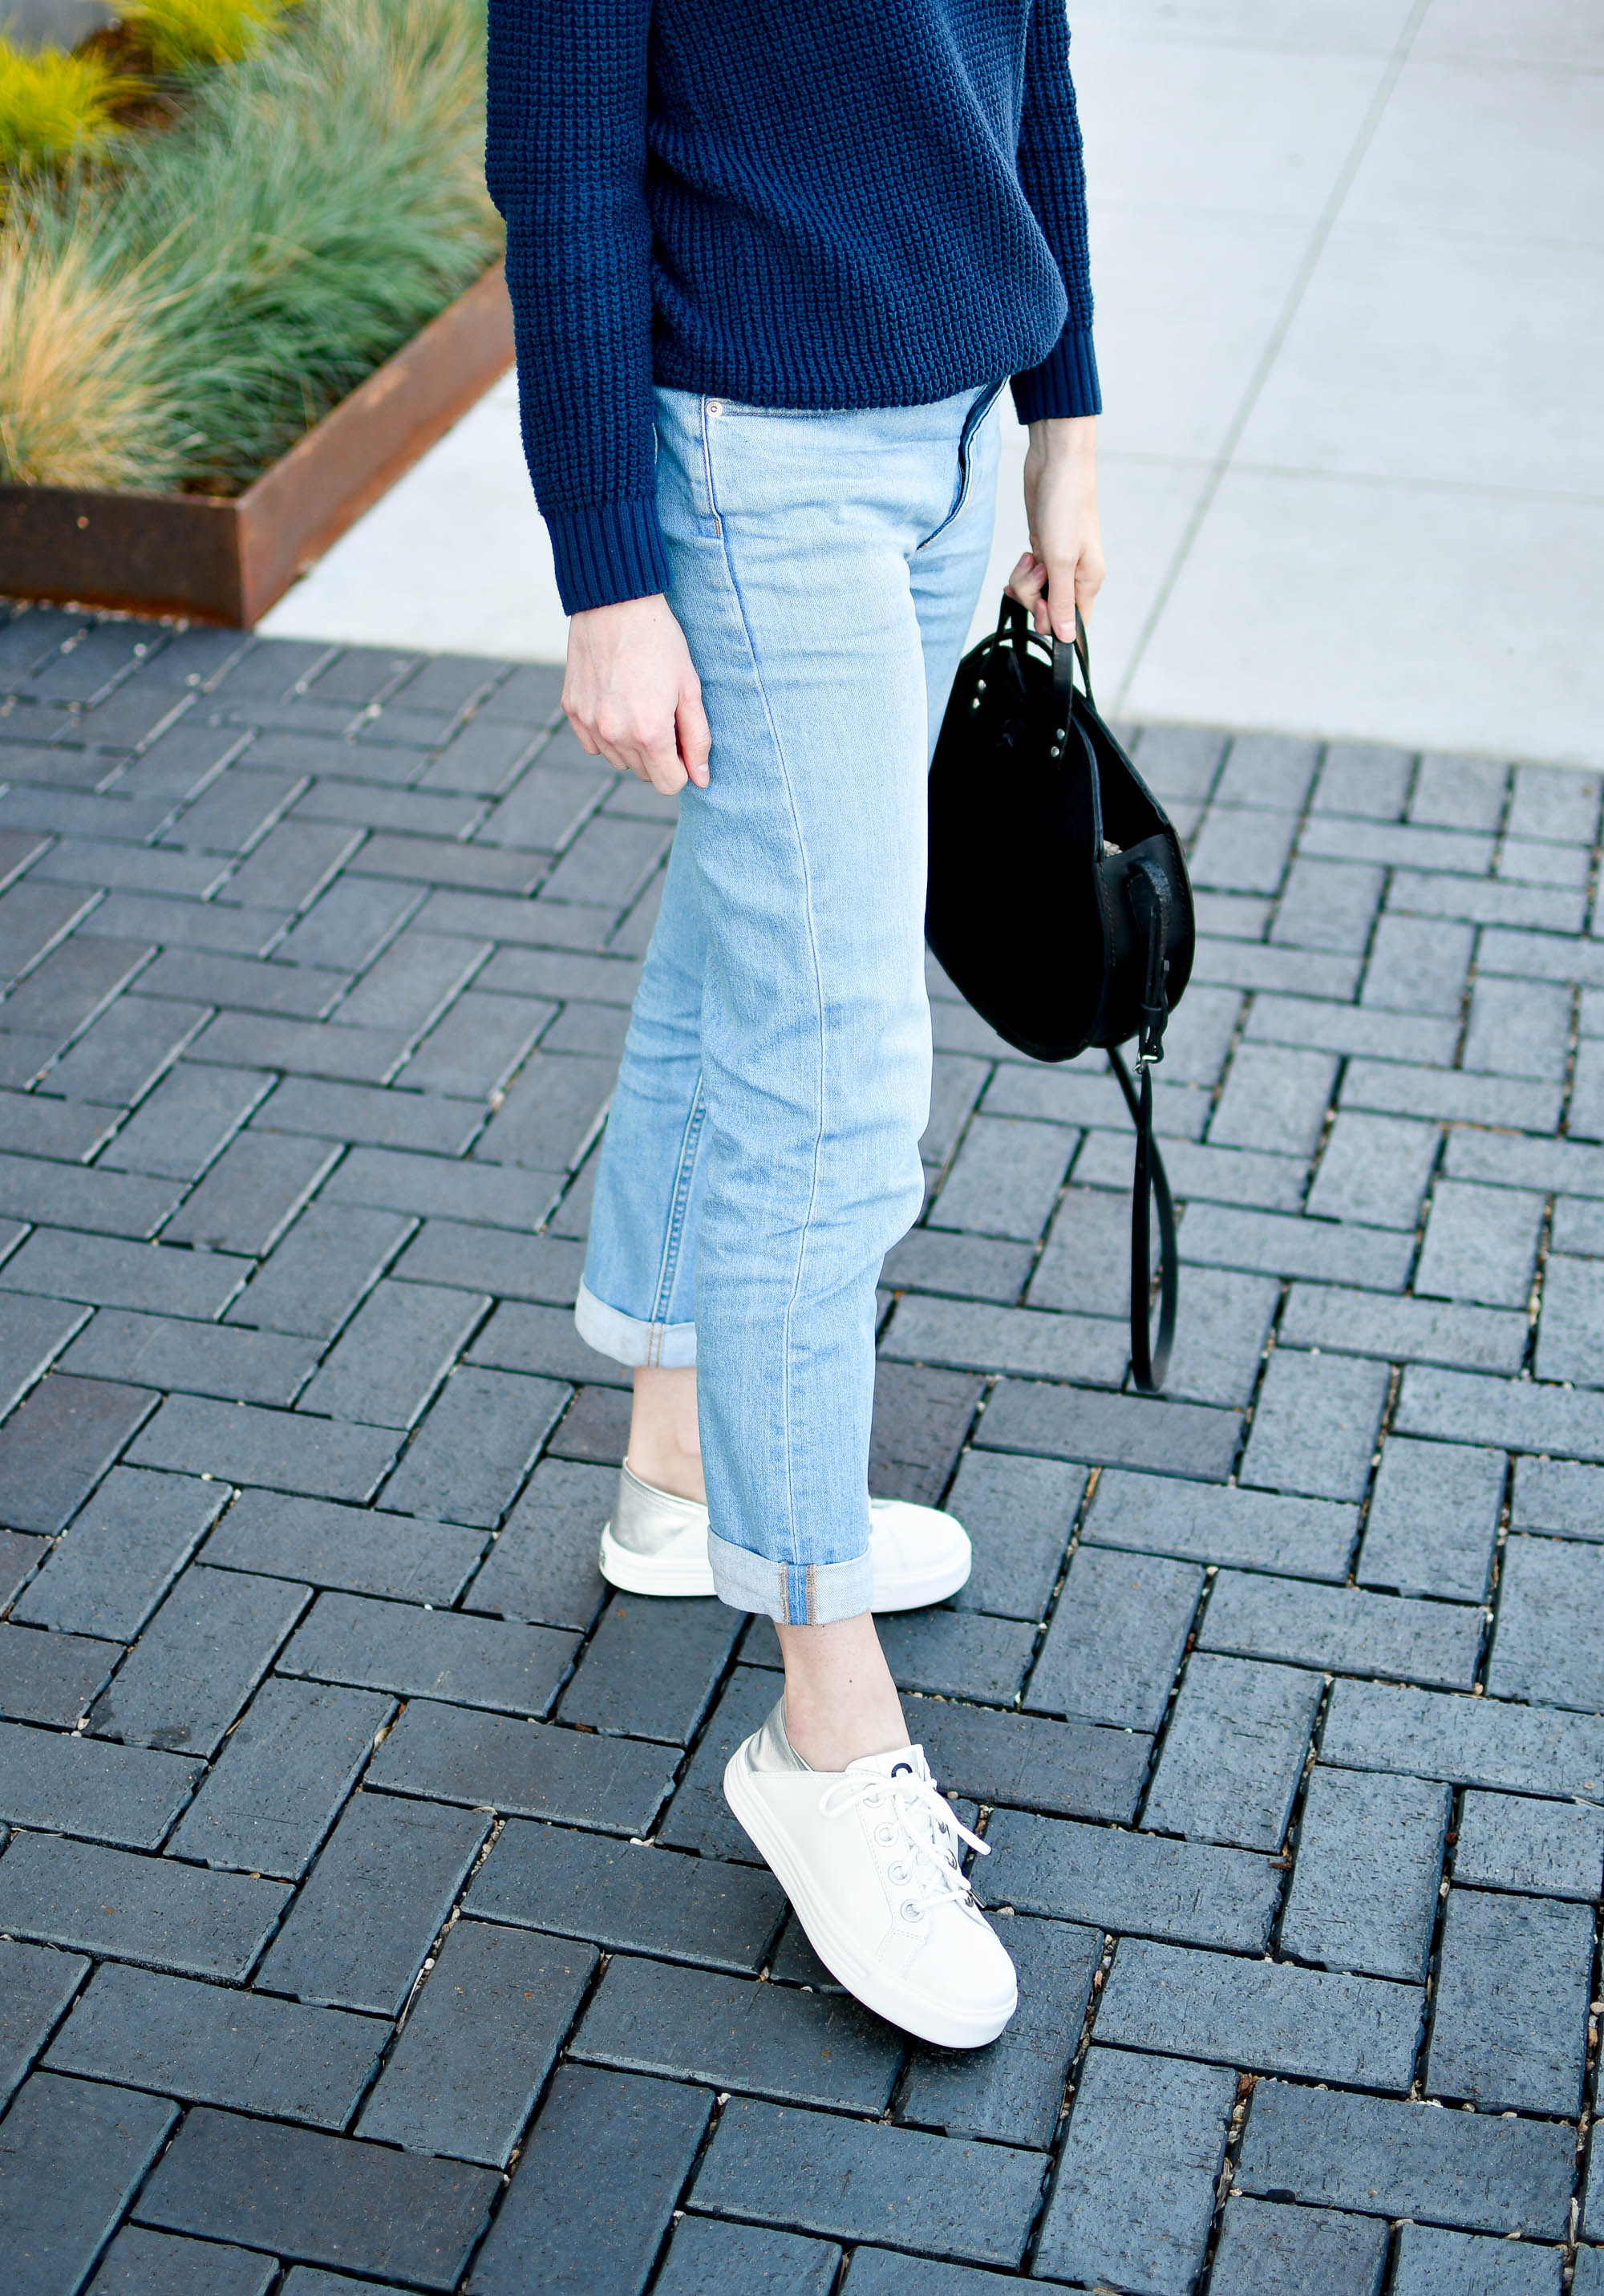 Earth Cedarwood sneakers in white spring outfit — Cotton Cashmere Cat Hair